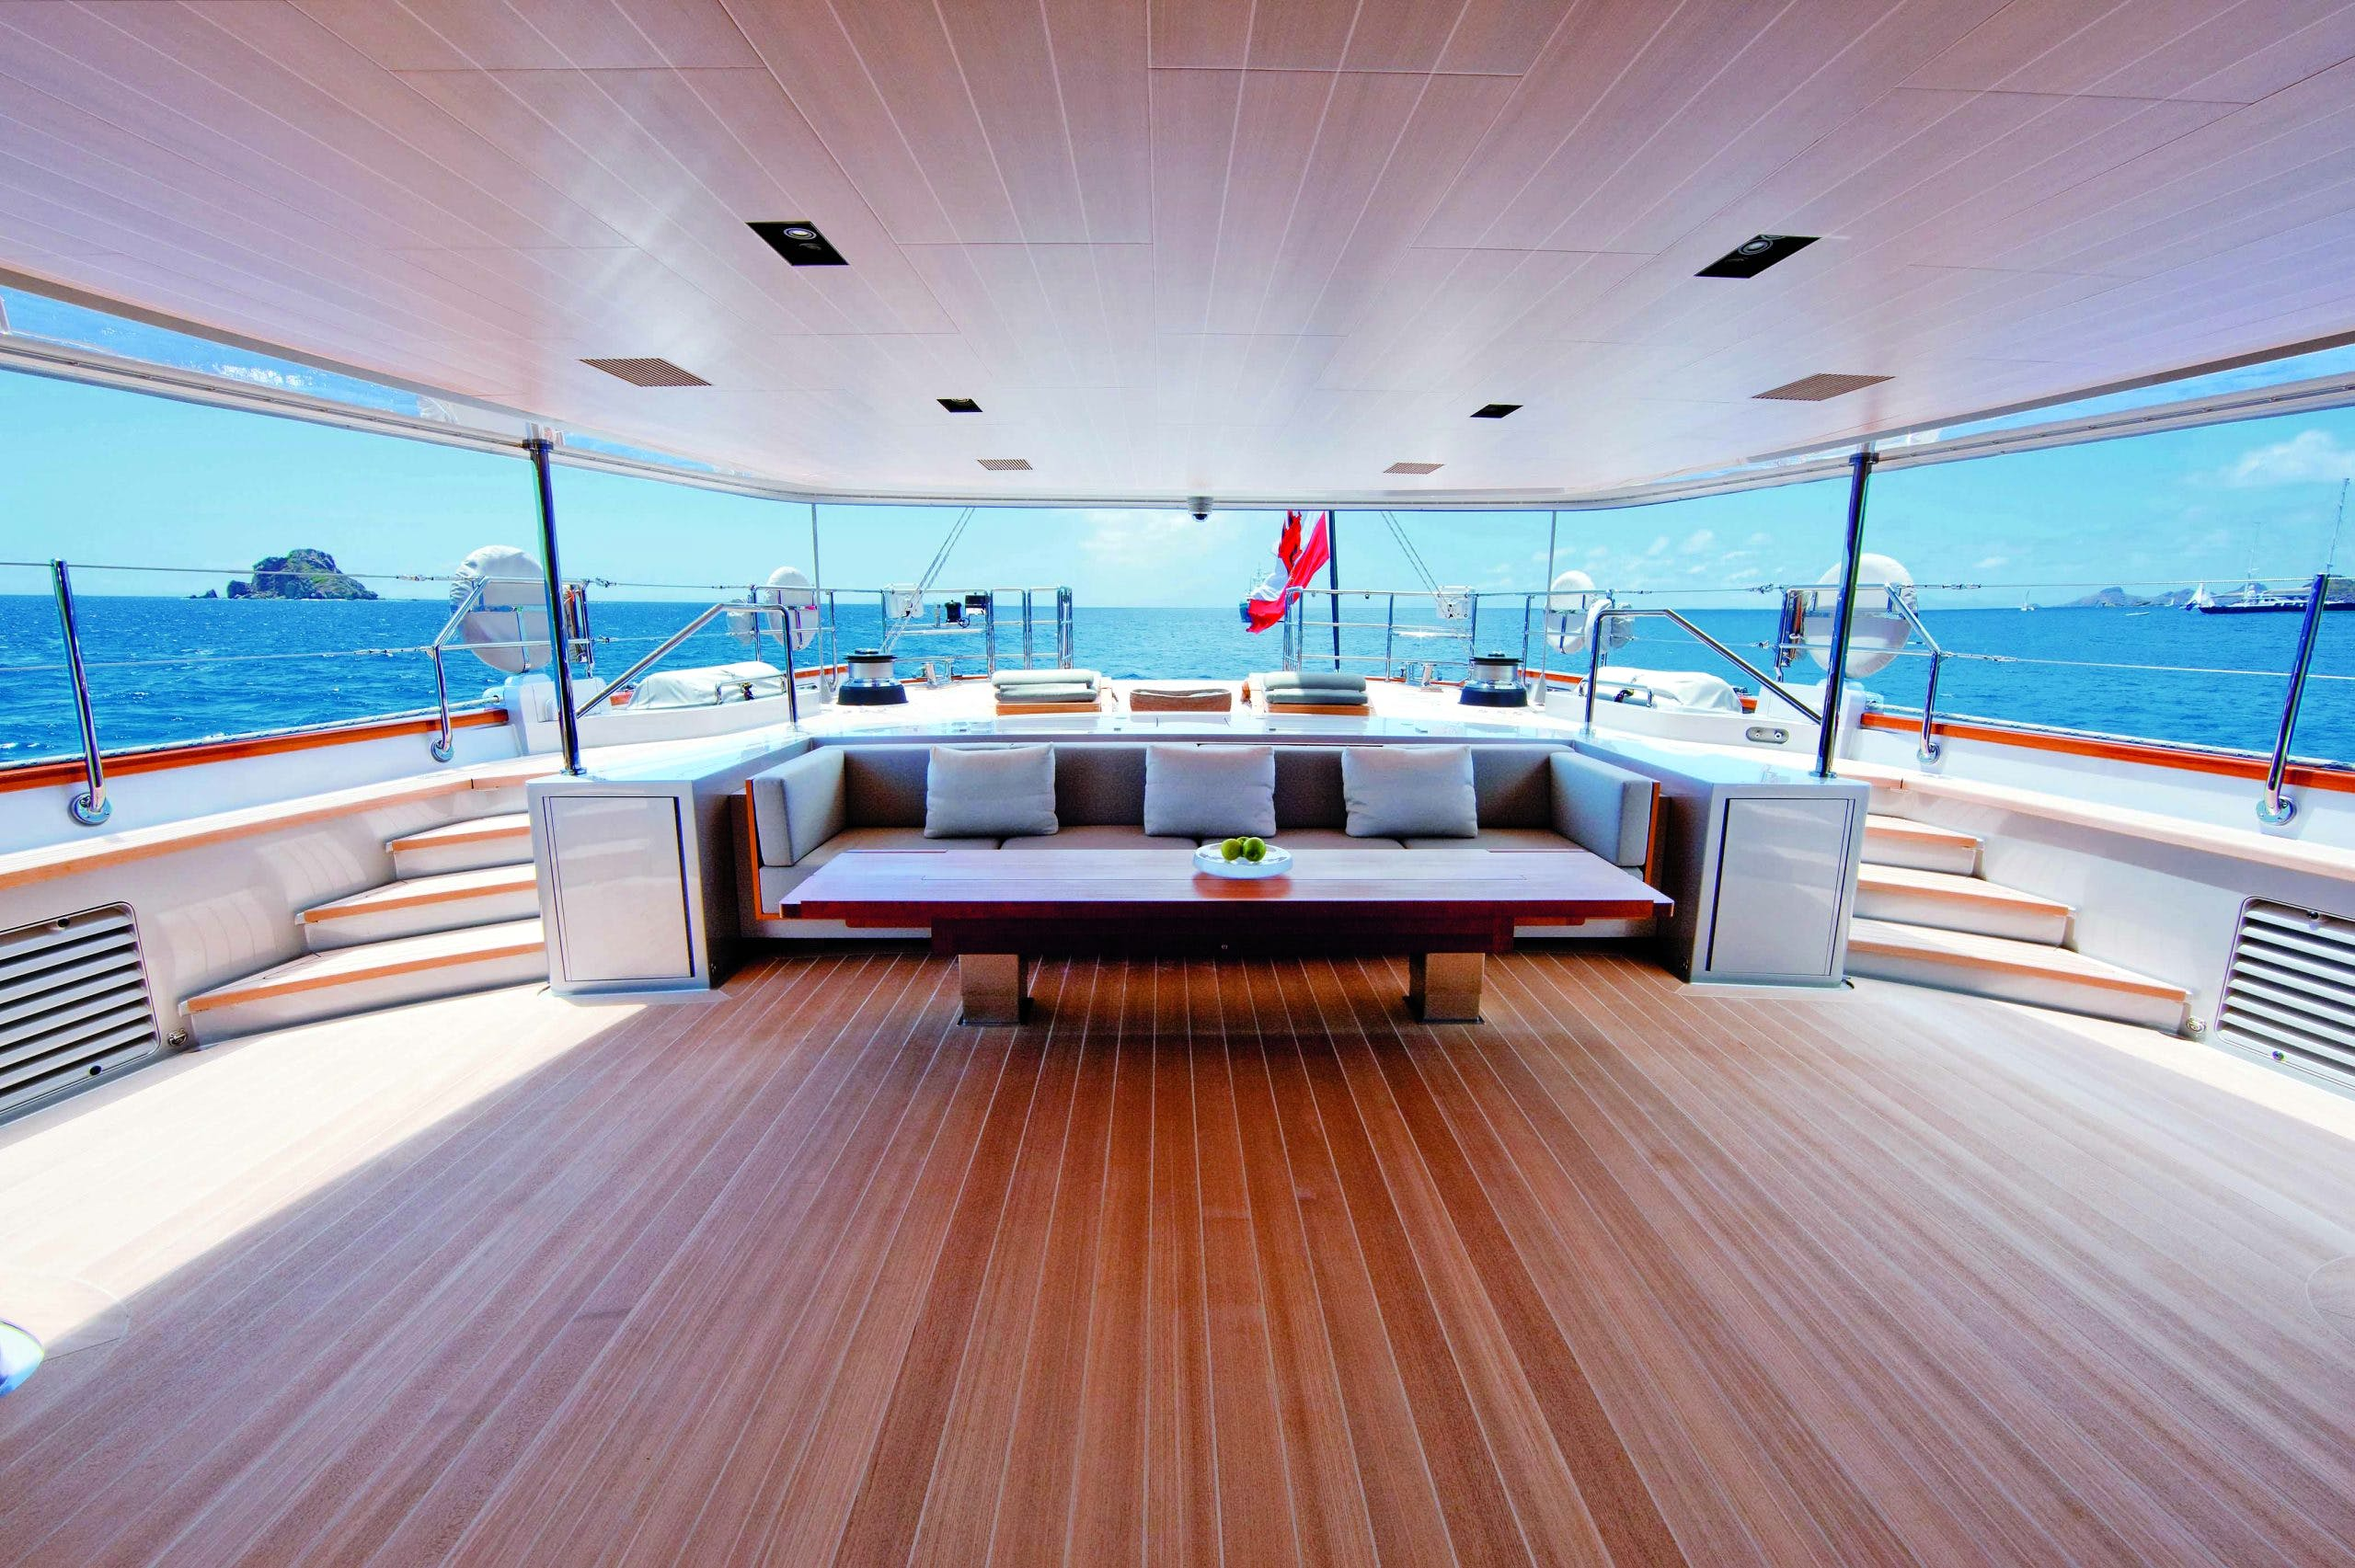 Seasonal Rates for BARACUDA VALLETTA Private Luxury Yacht For Charter